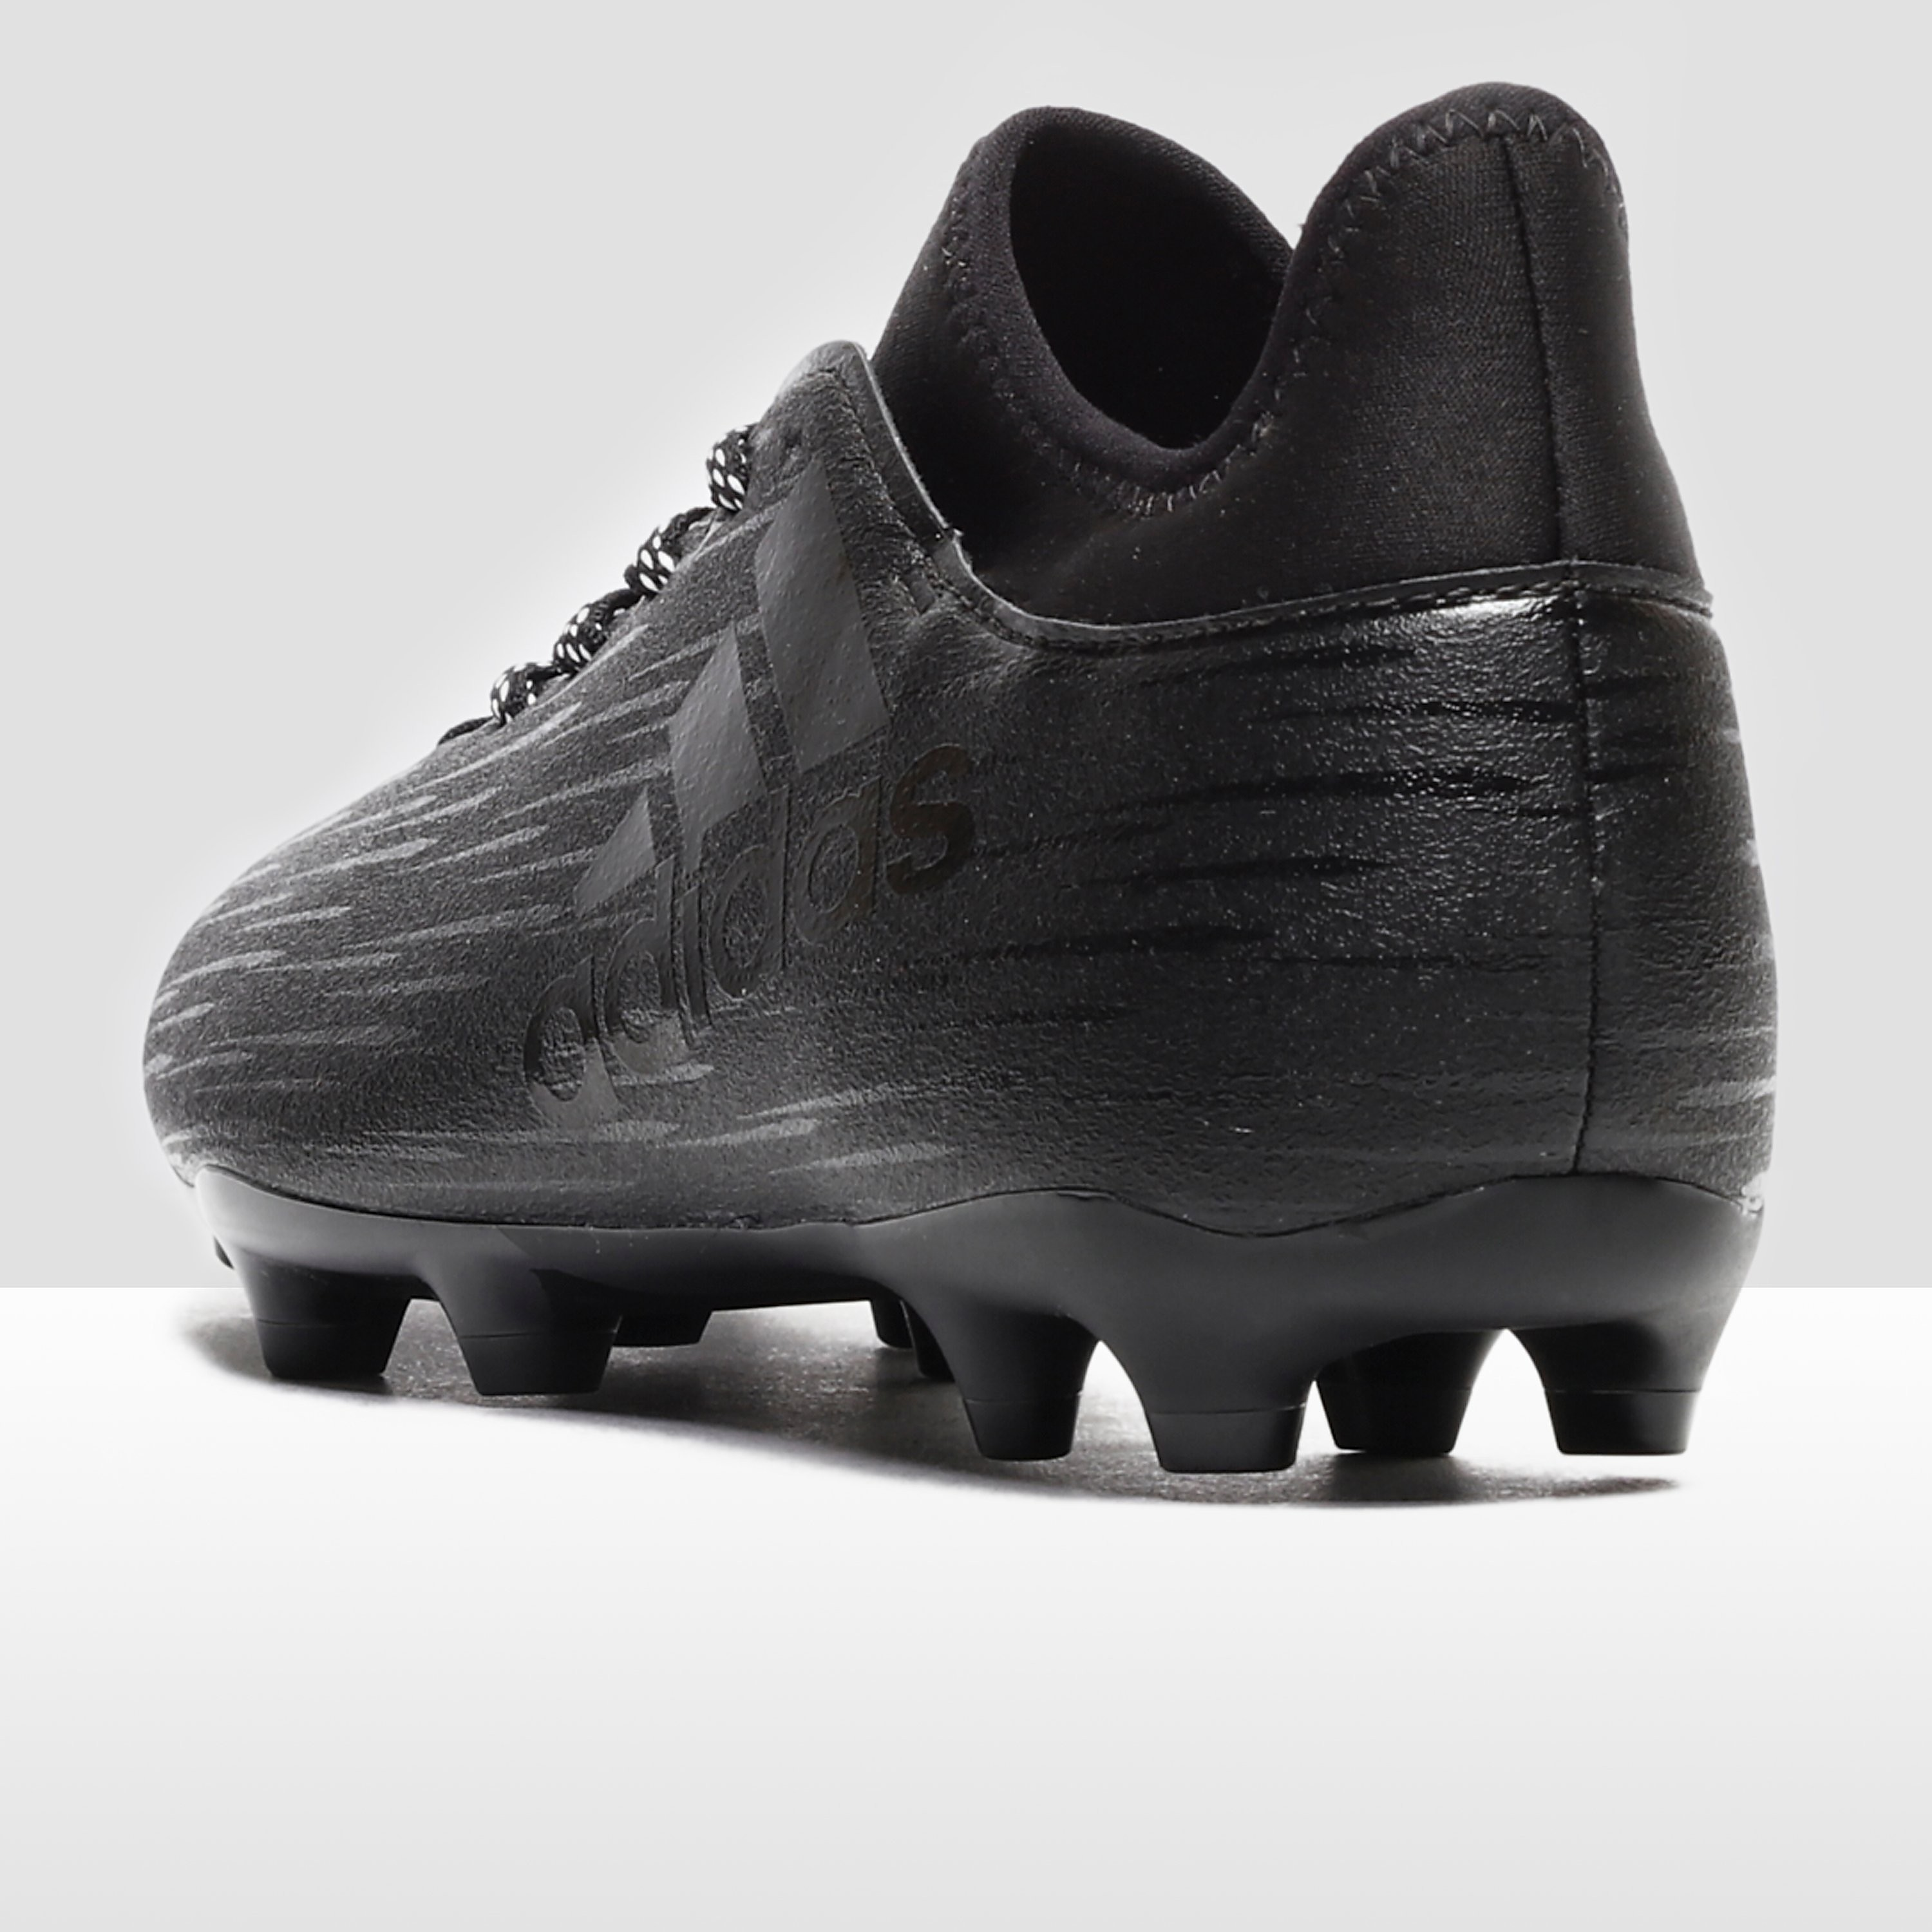 adidas ACE 16.3 Primemesh Firm Ground Boots